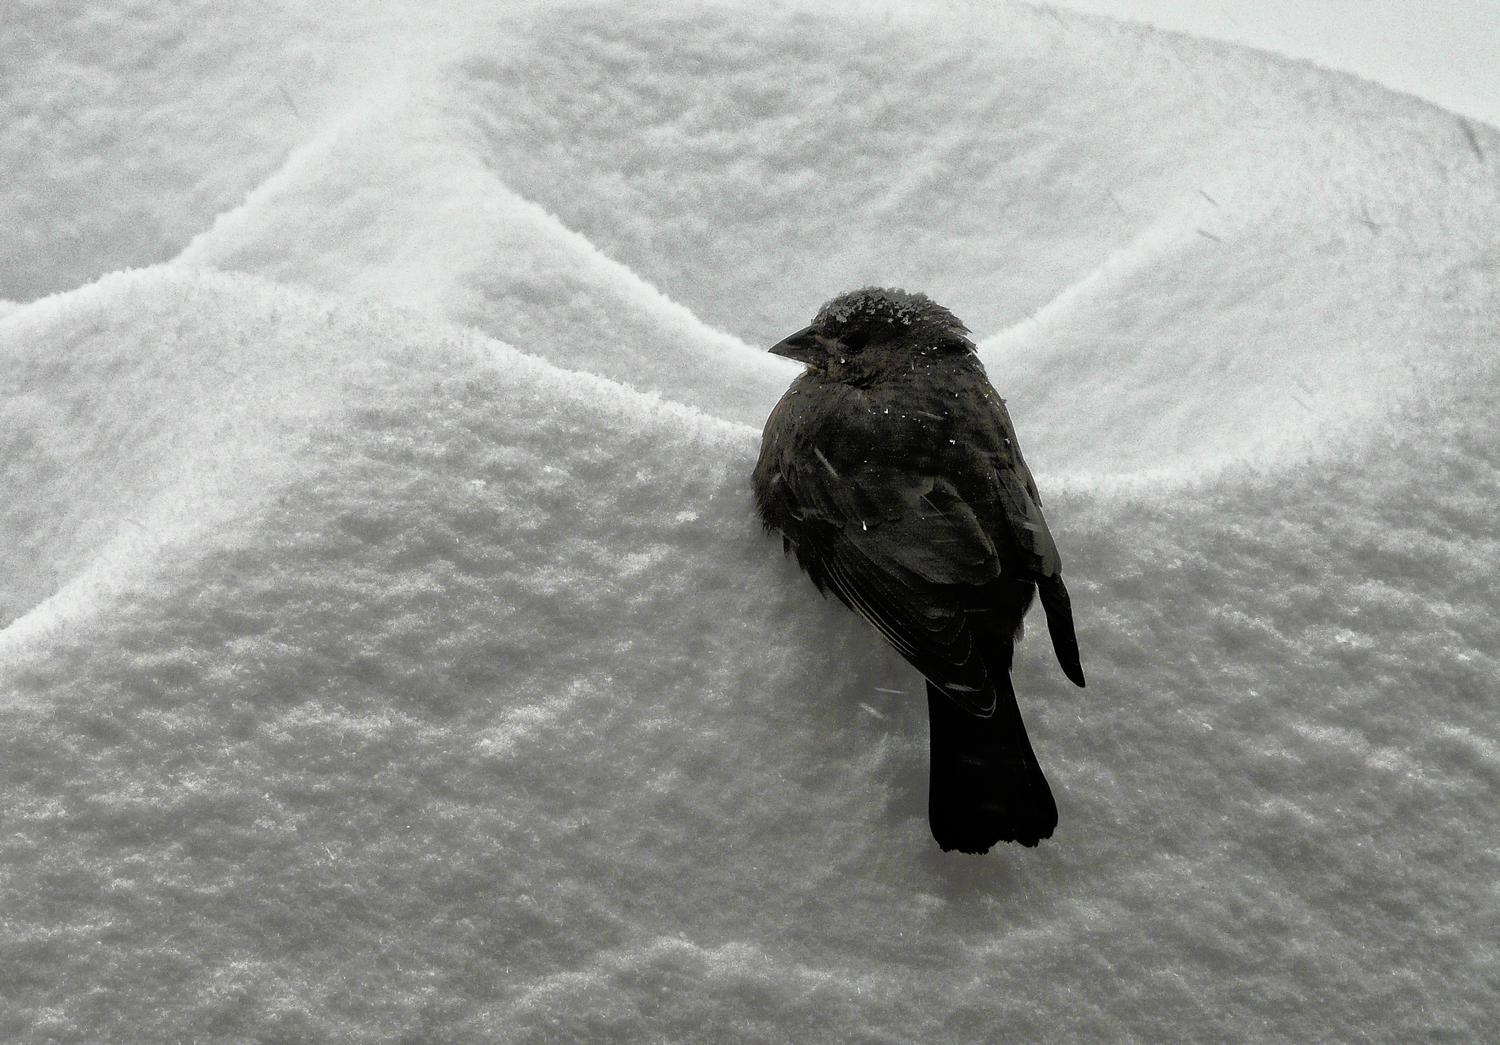 -  Panasonic DMC-FZ18 - Bird on a snow drift. - - art  - photography - by Tony Karp